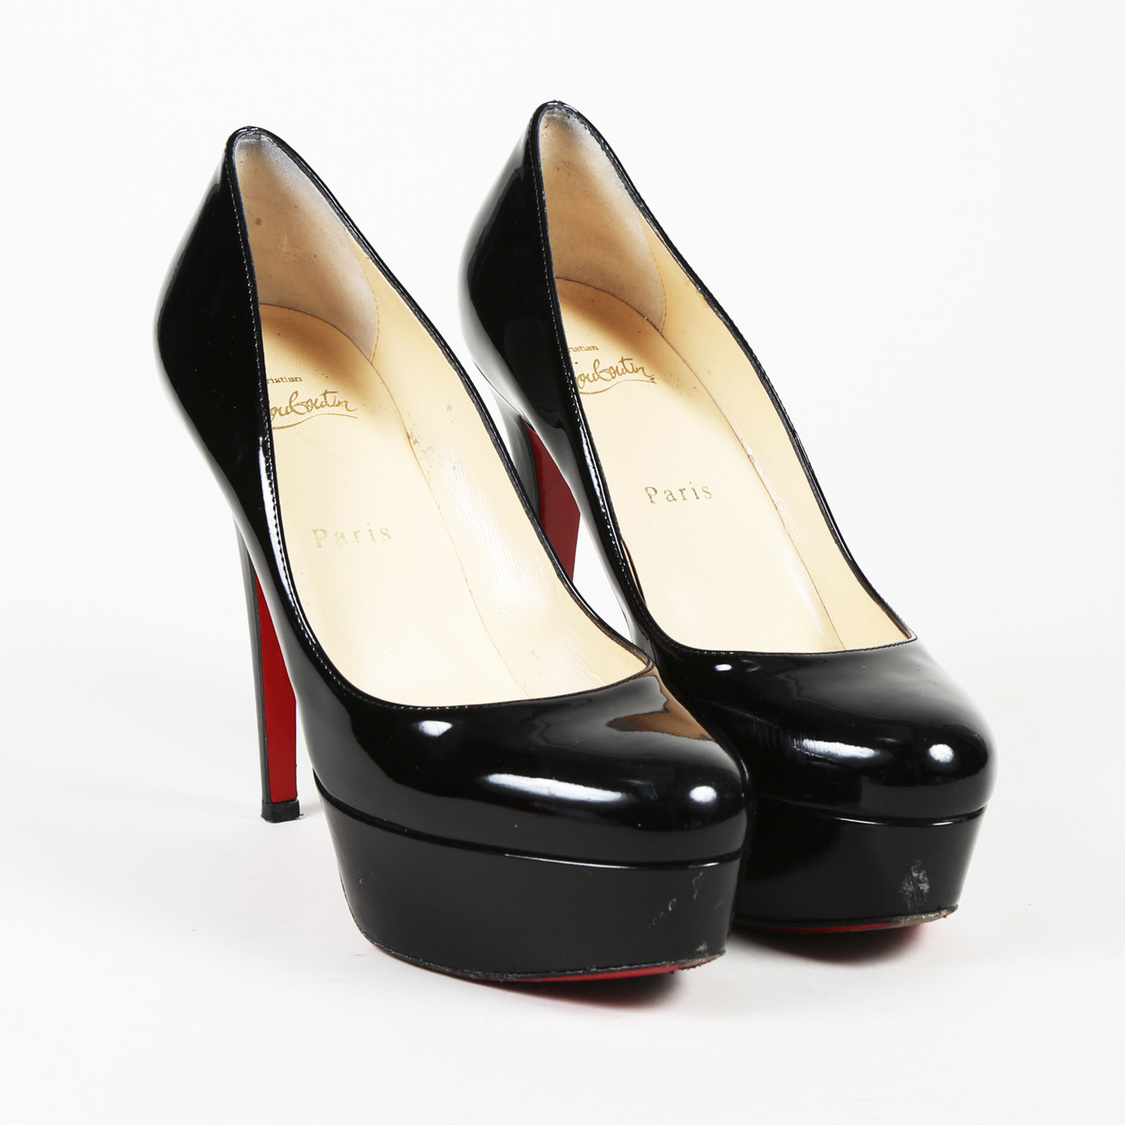 half off 1e9e5 adbe4 Details about Christian Louboutin Patent Leather